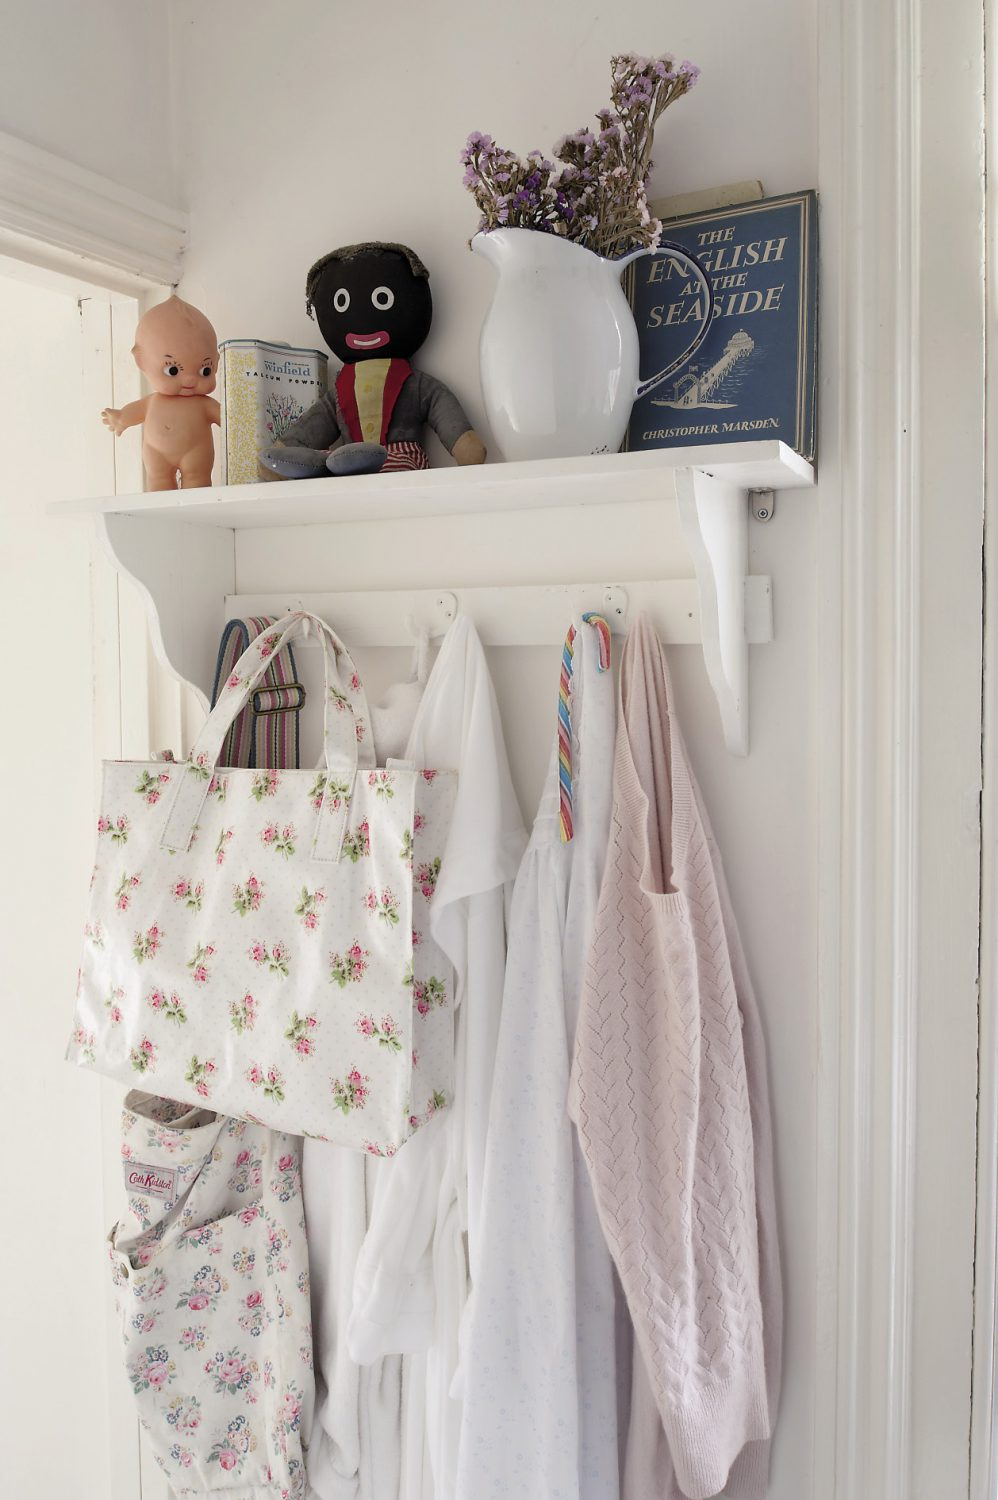 More of Anastasia's eclectic collections line a shelf in the entrance to the bathroom